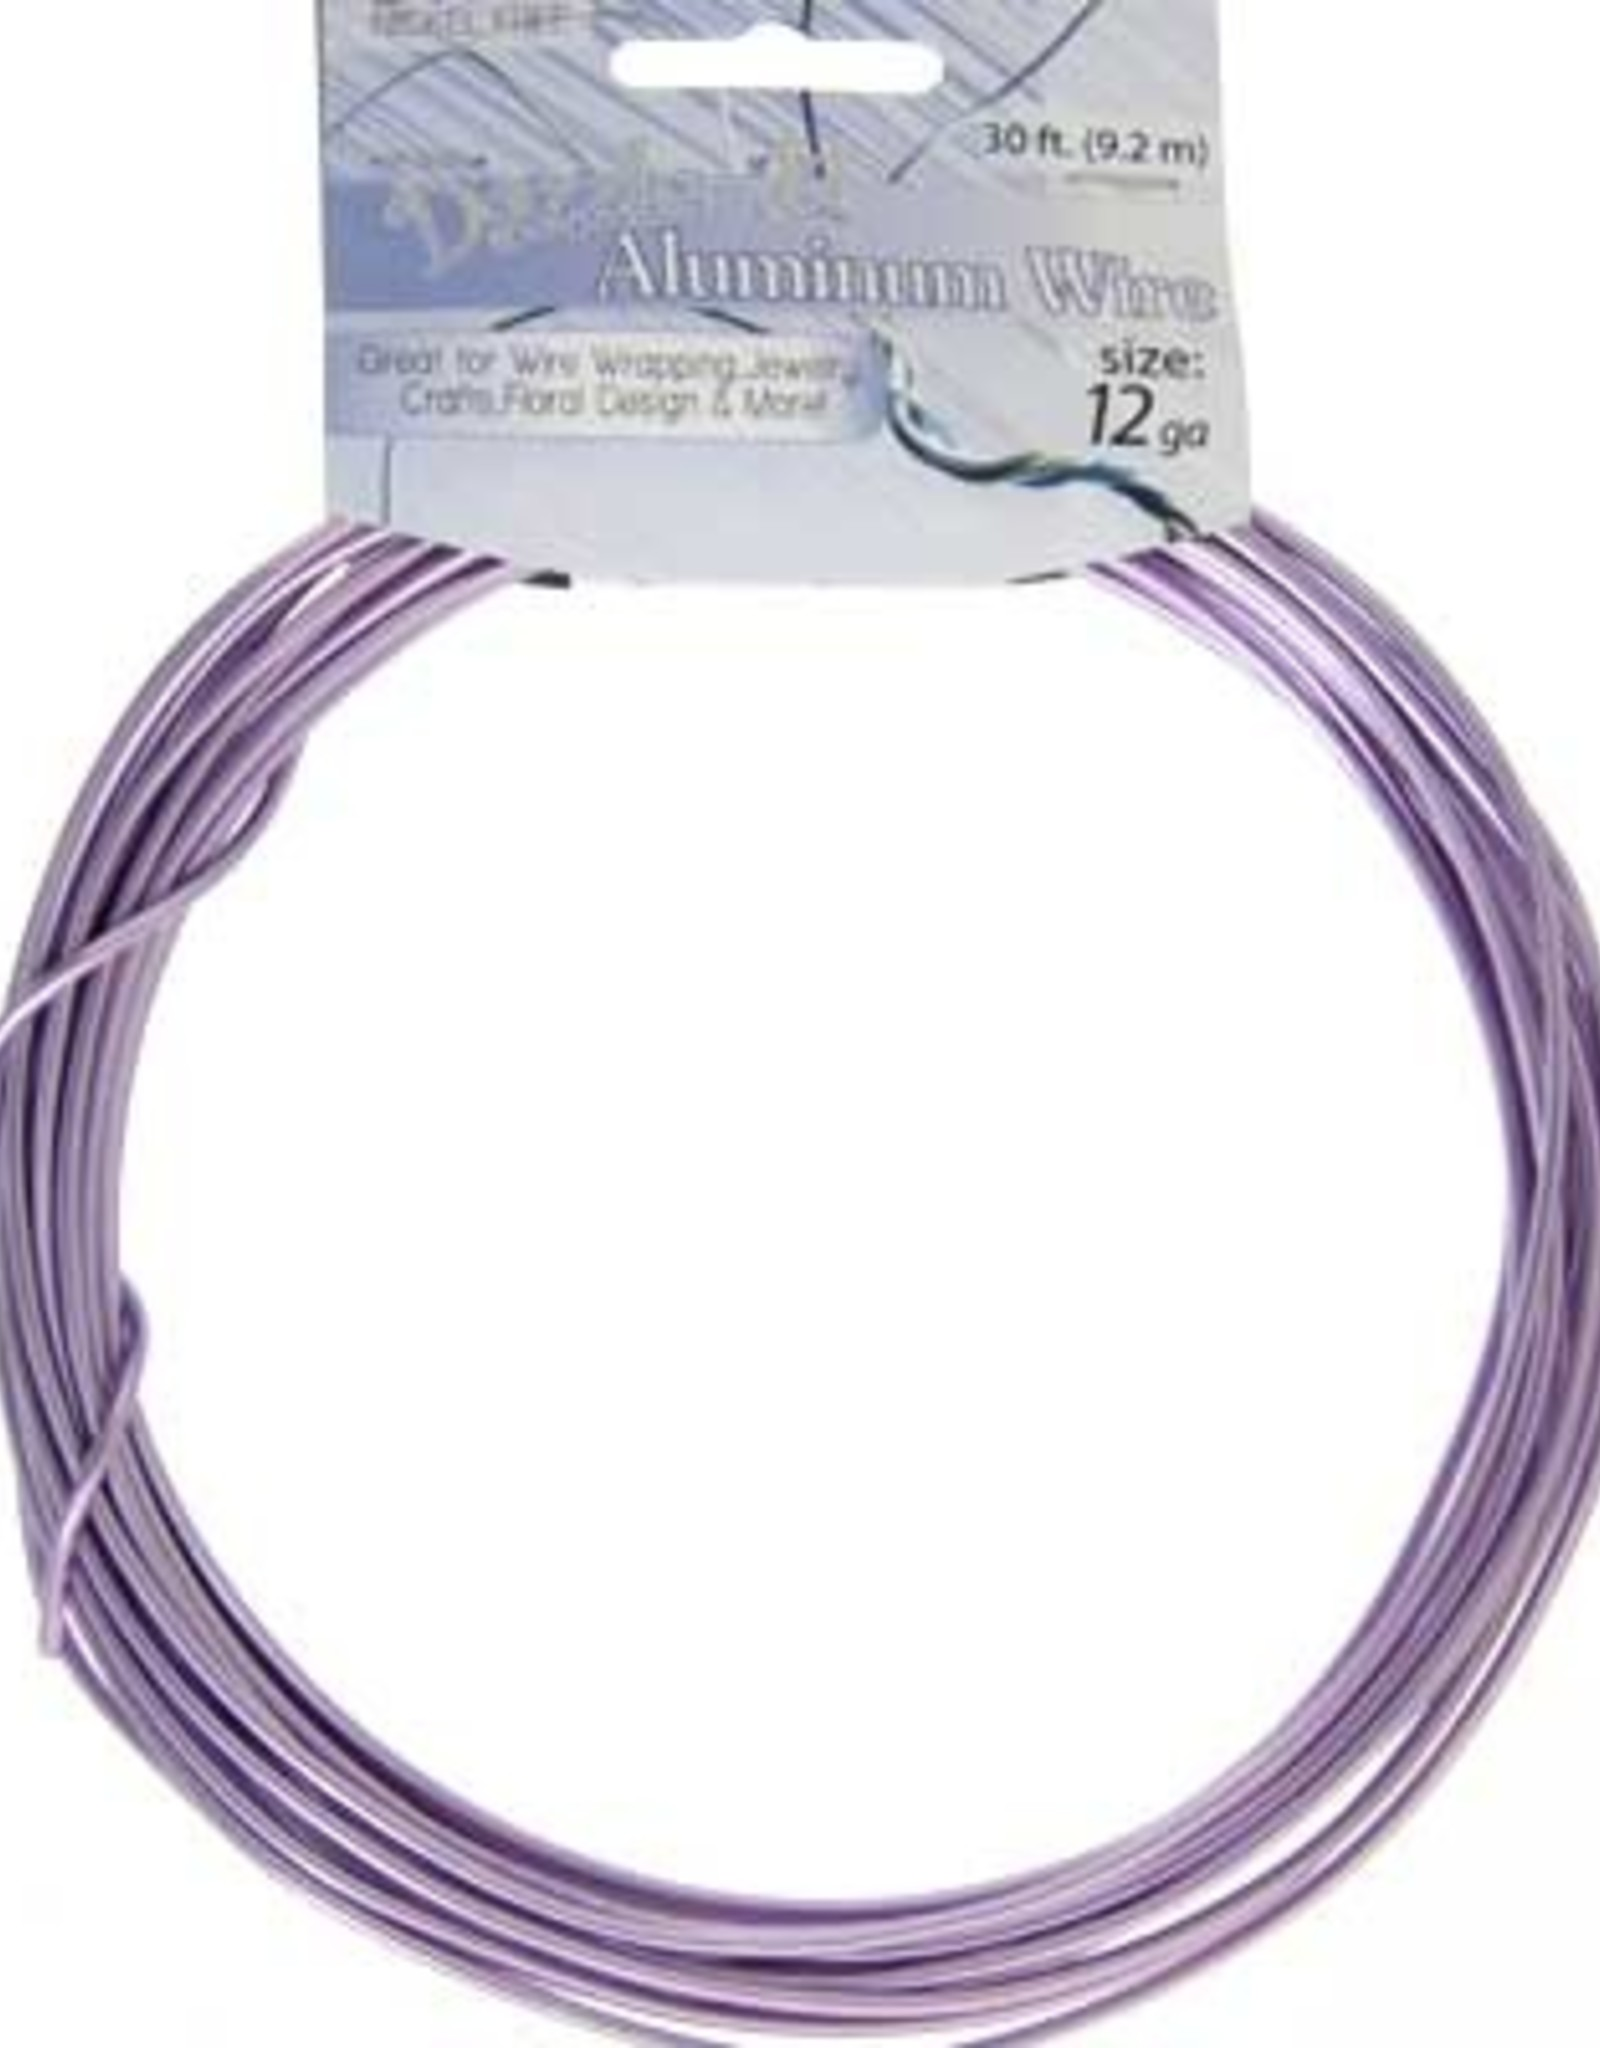 Aluminum Wire 30 Feet (9.2 meters) 12 Guage (2.5mm)